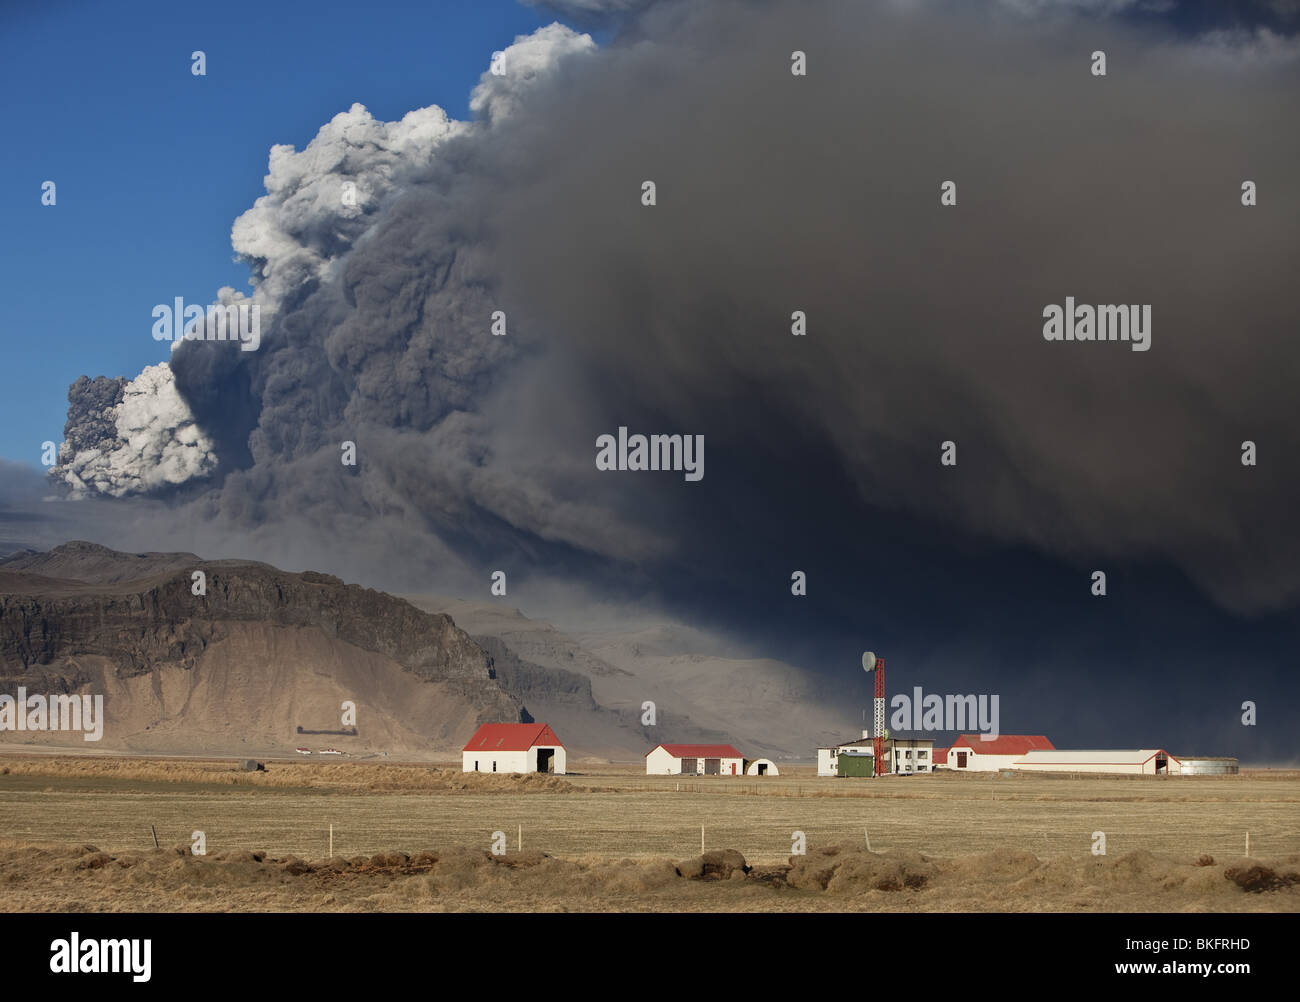 Farm with Volcanic Ash Cloud from Eyjafjallajokull Volcano Eruption, Iceland. - Stock Image